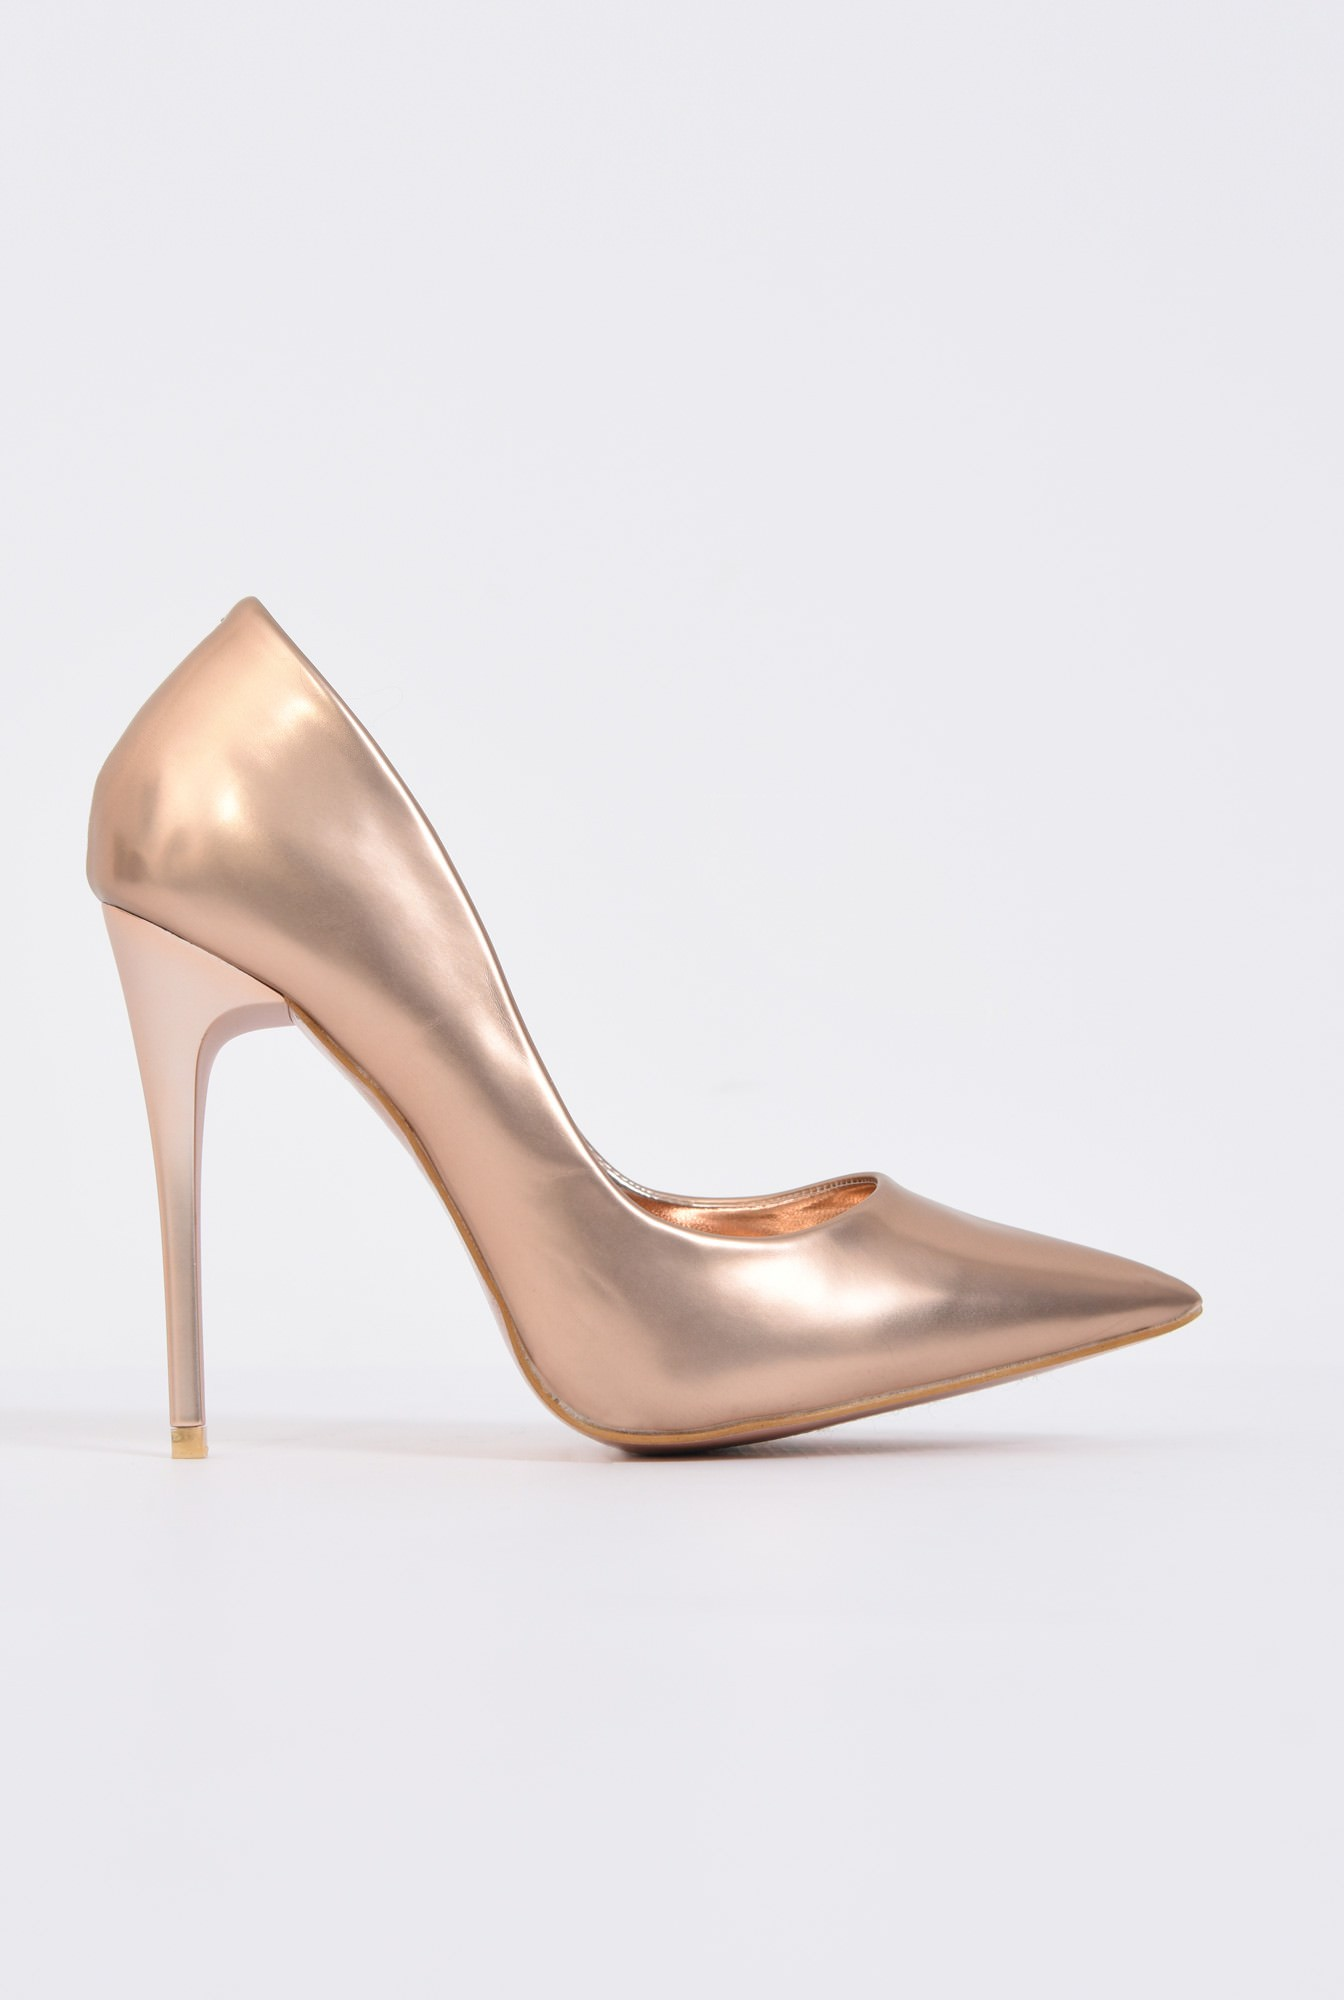 0 - PANTOFI STILETTO PO10091701-GOLD/ROSE